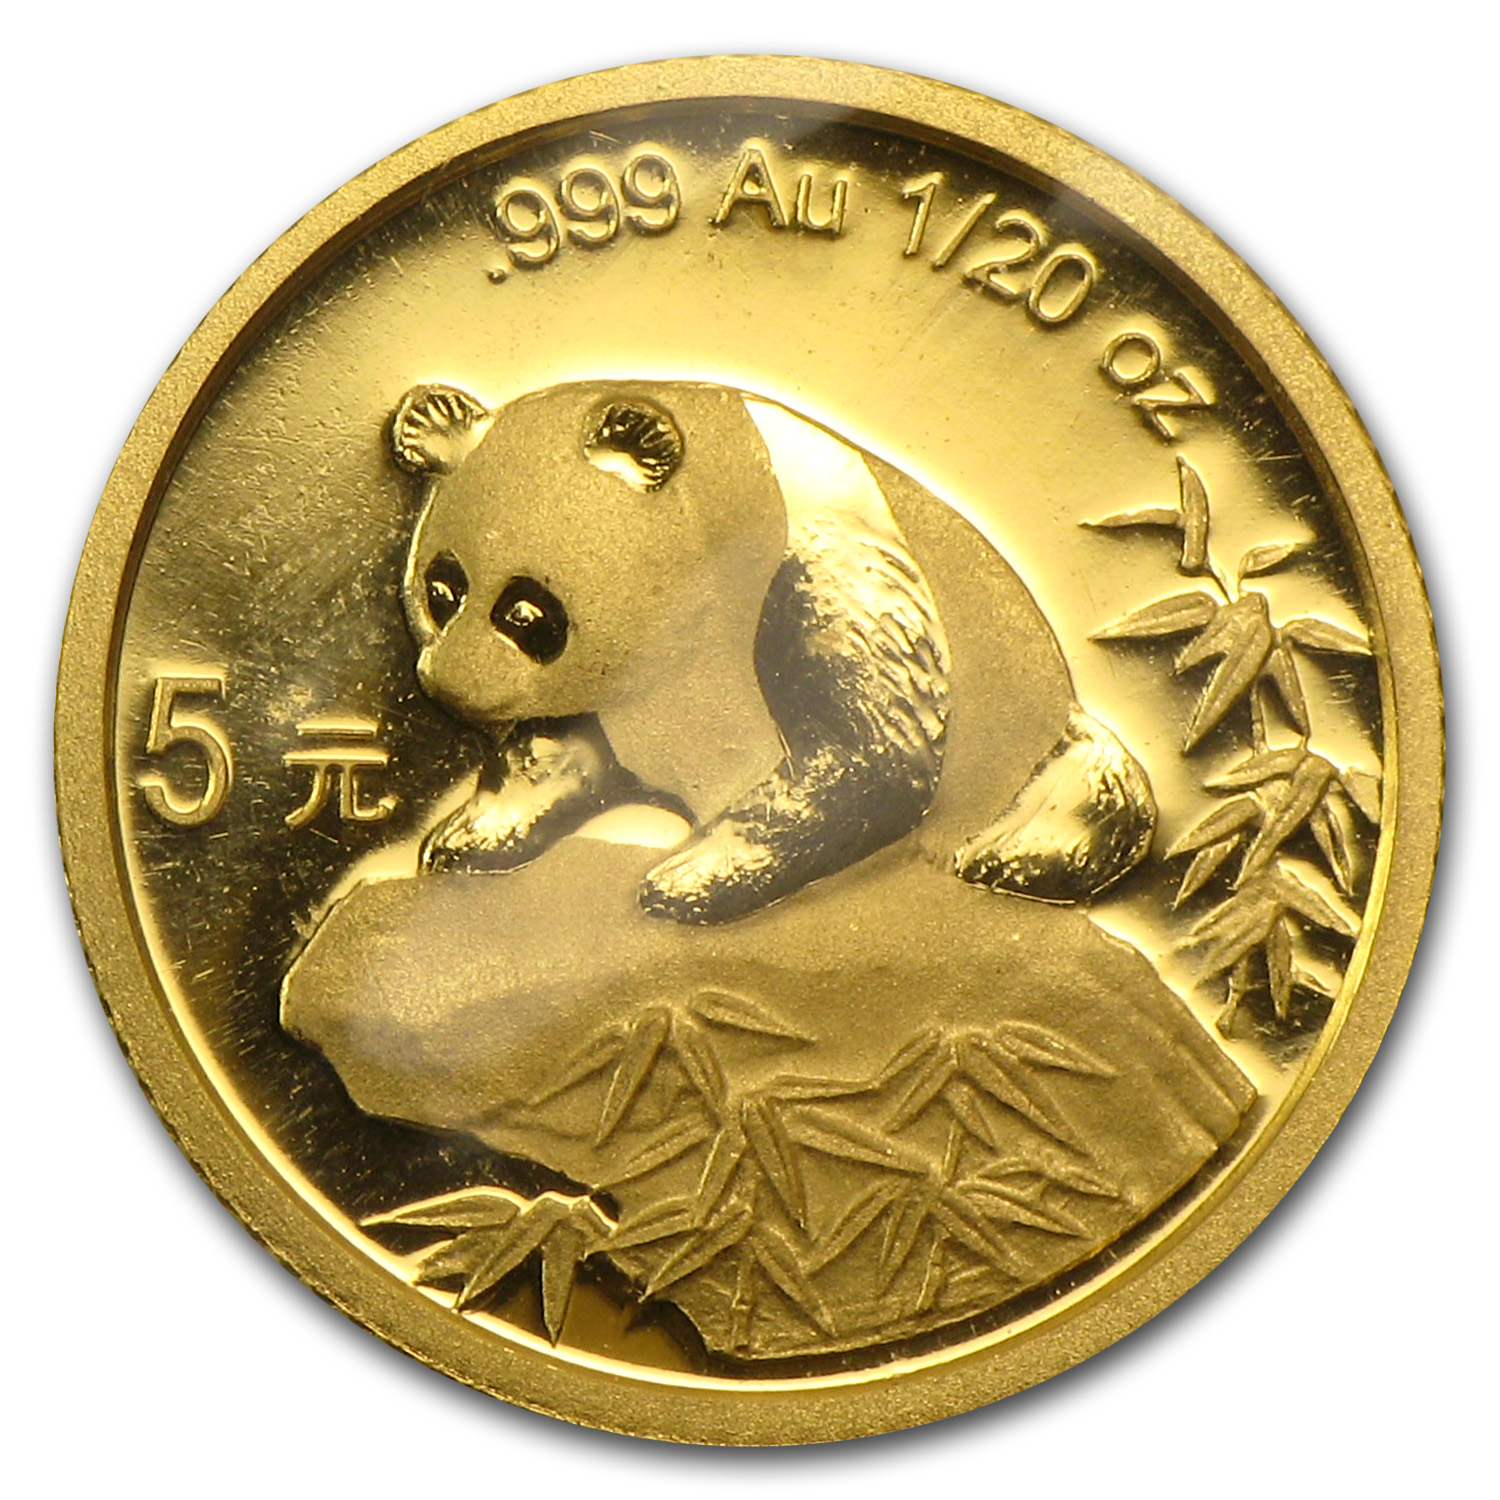 1999 1/20 oz Gold Chinese Panda Large Date No Serif BU (Sealed)